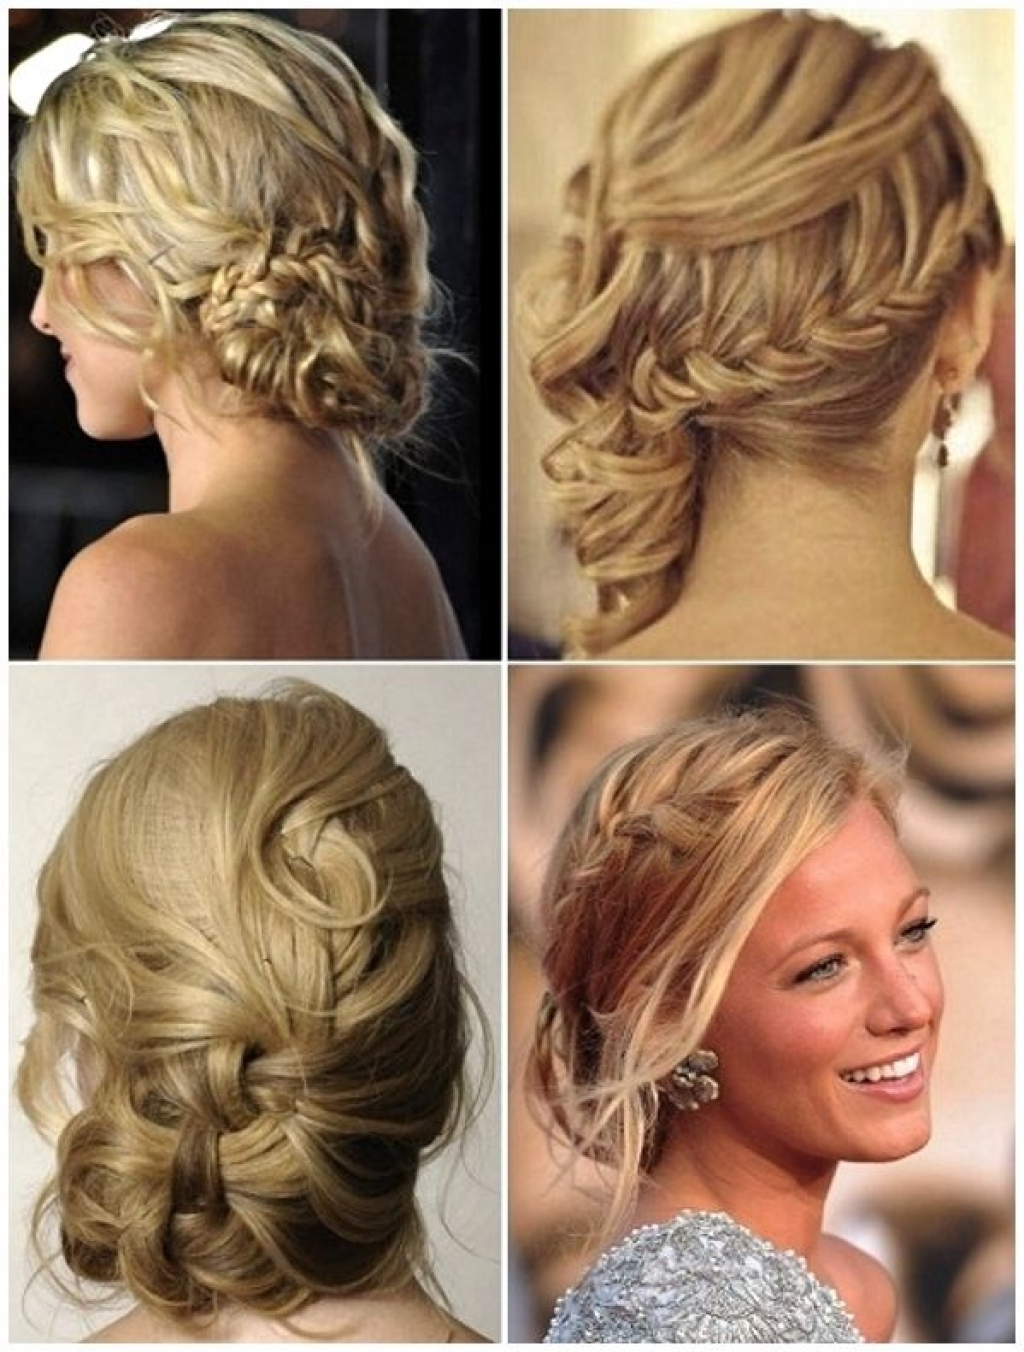 Trendy Updos Wedding Hairstyles For Short Hair Within Hair Dosr Wedding Wdding Hairdos Mdium Lovely Hairstyles Updos (View 10 of 15)